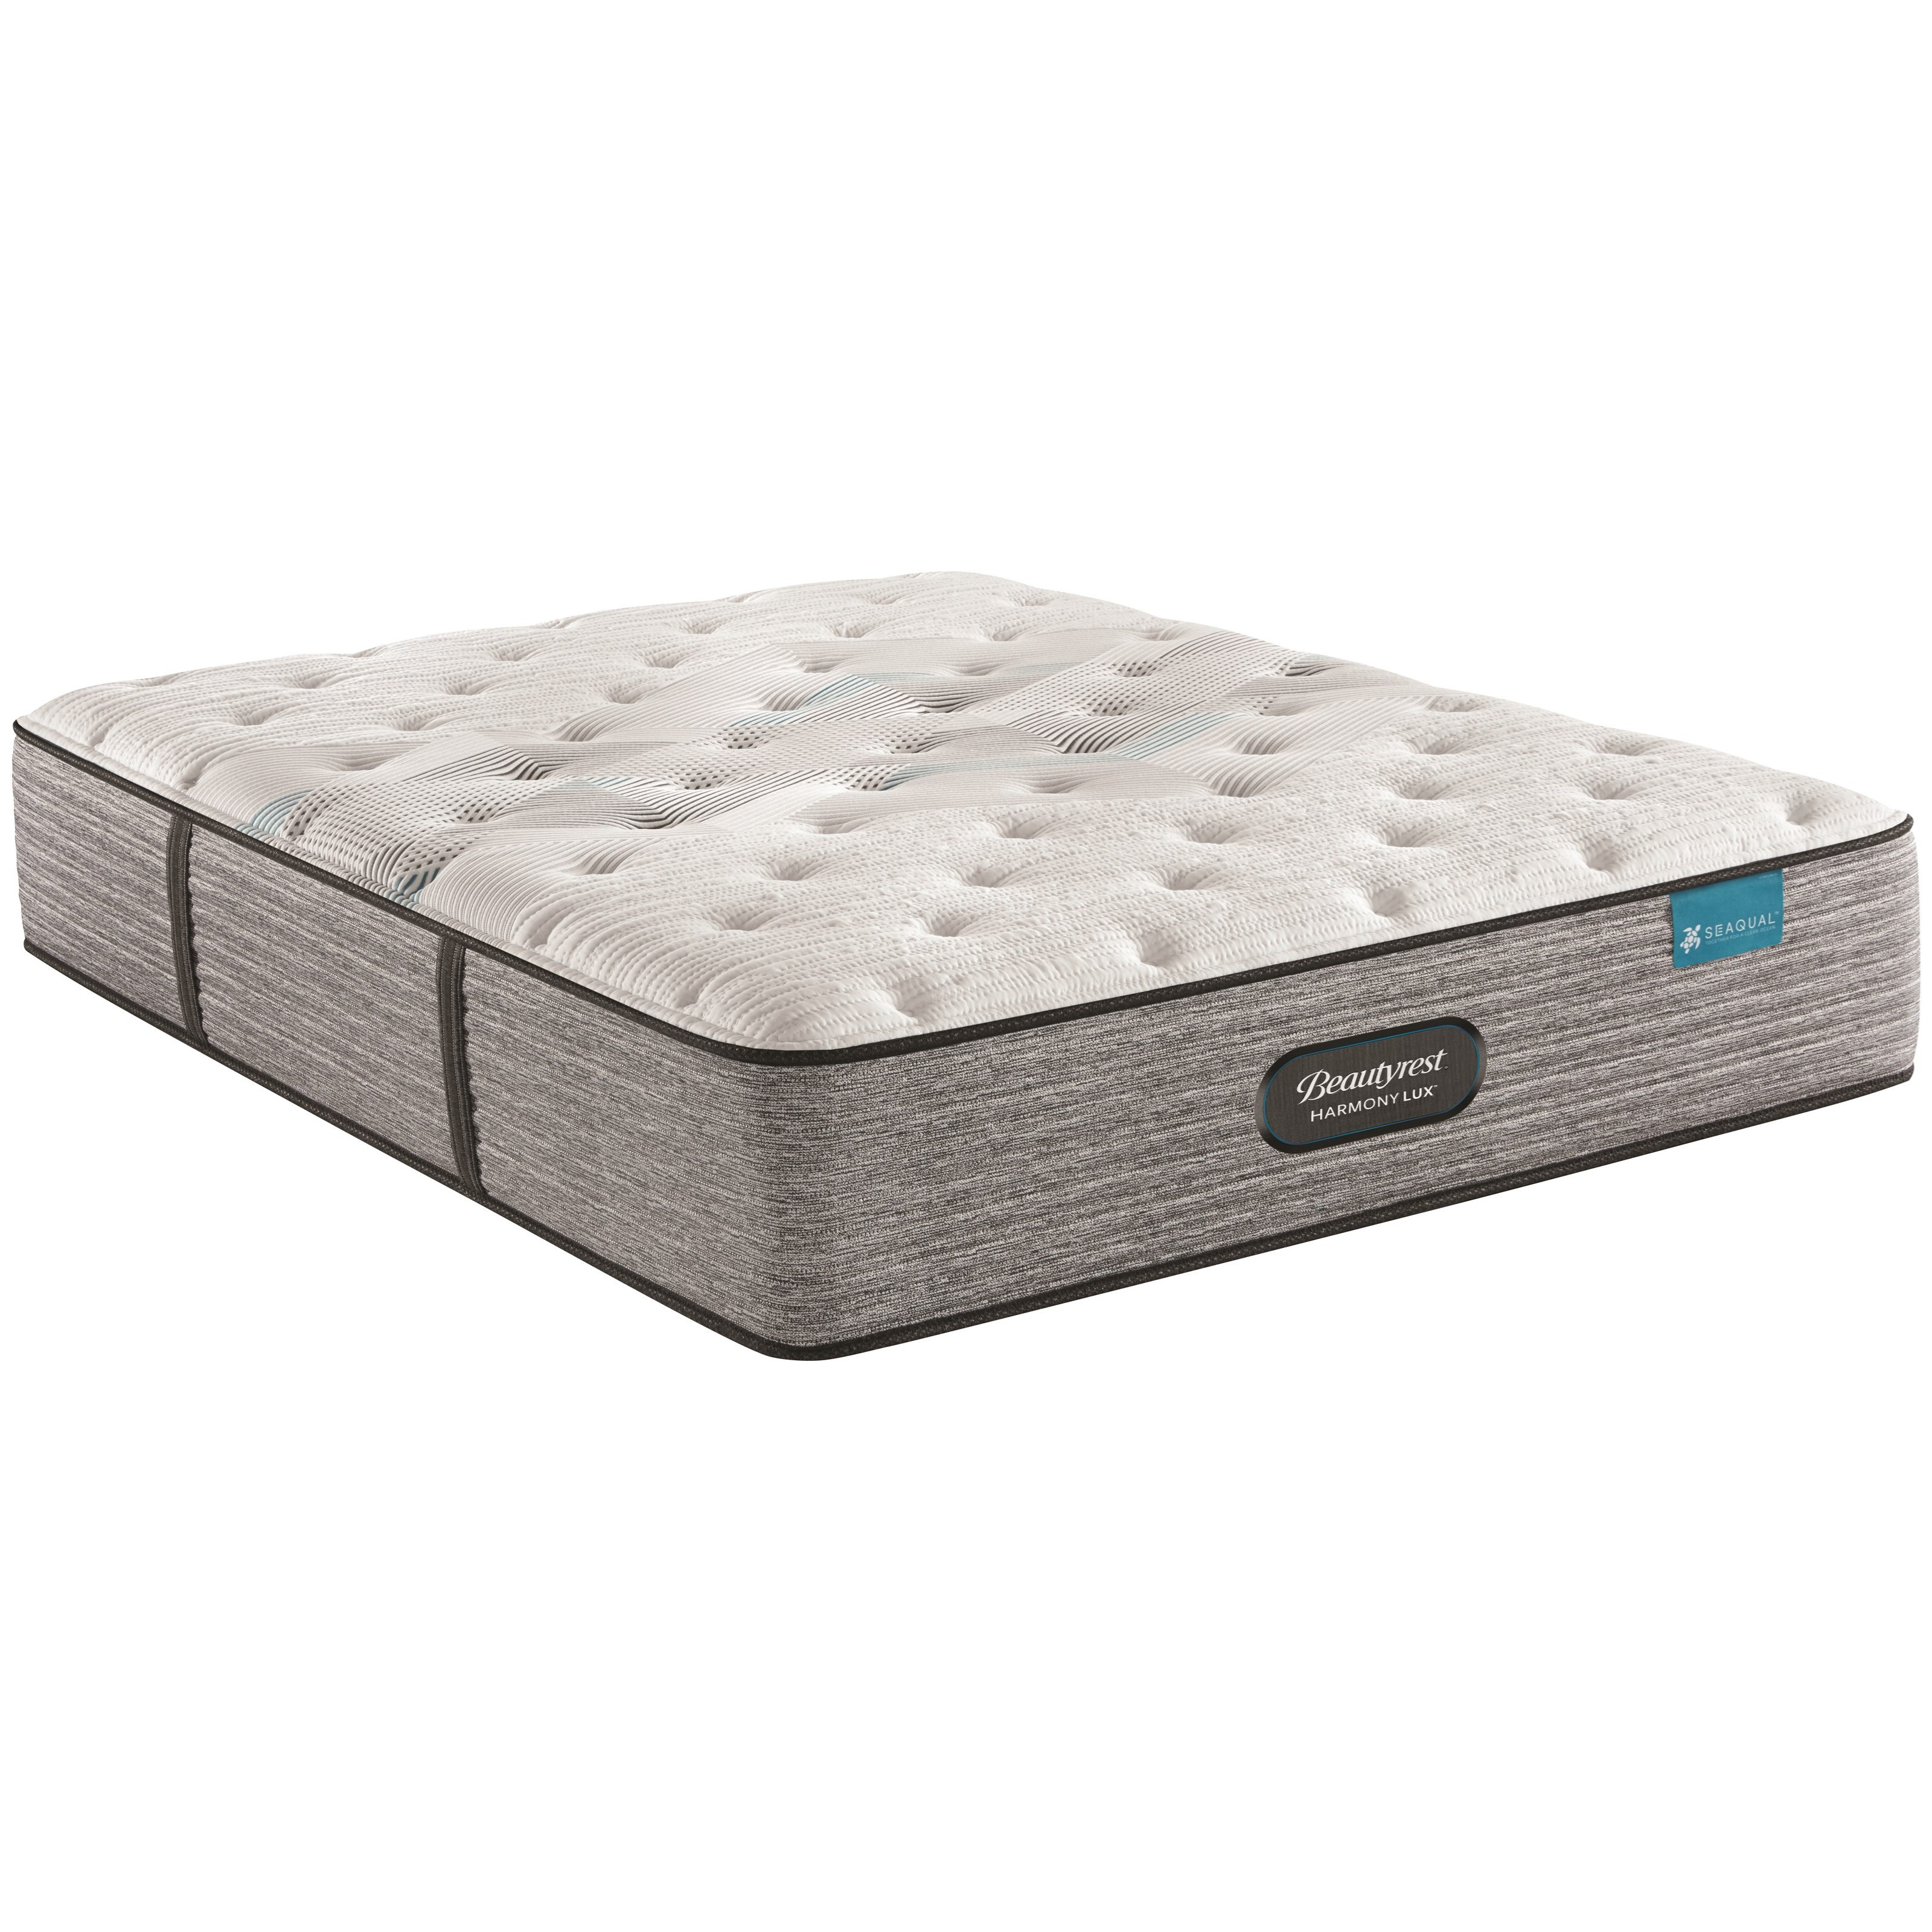 "Twin XL 13 3/4"" Medium Firm Mattress"